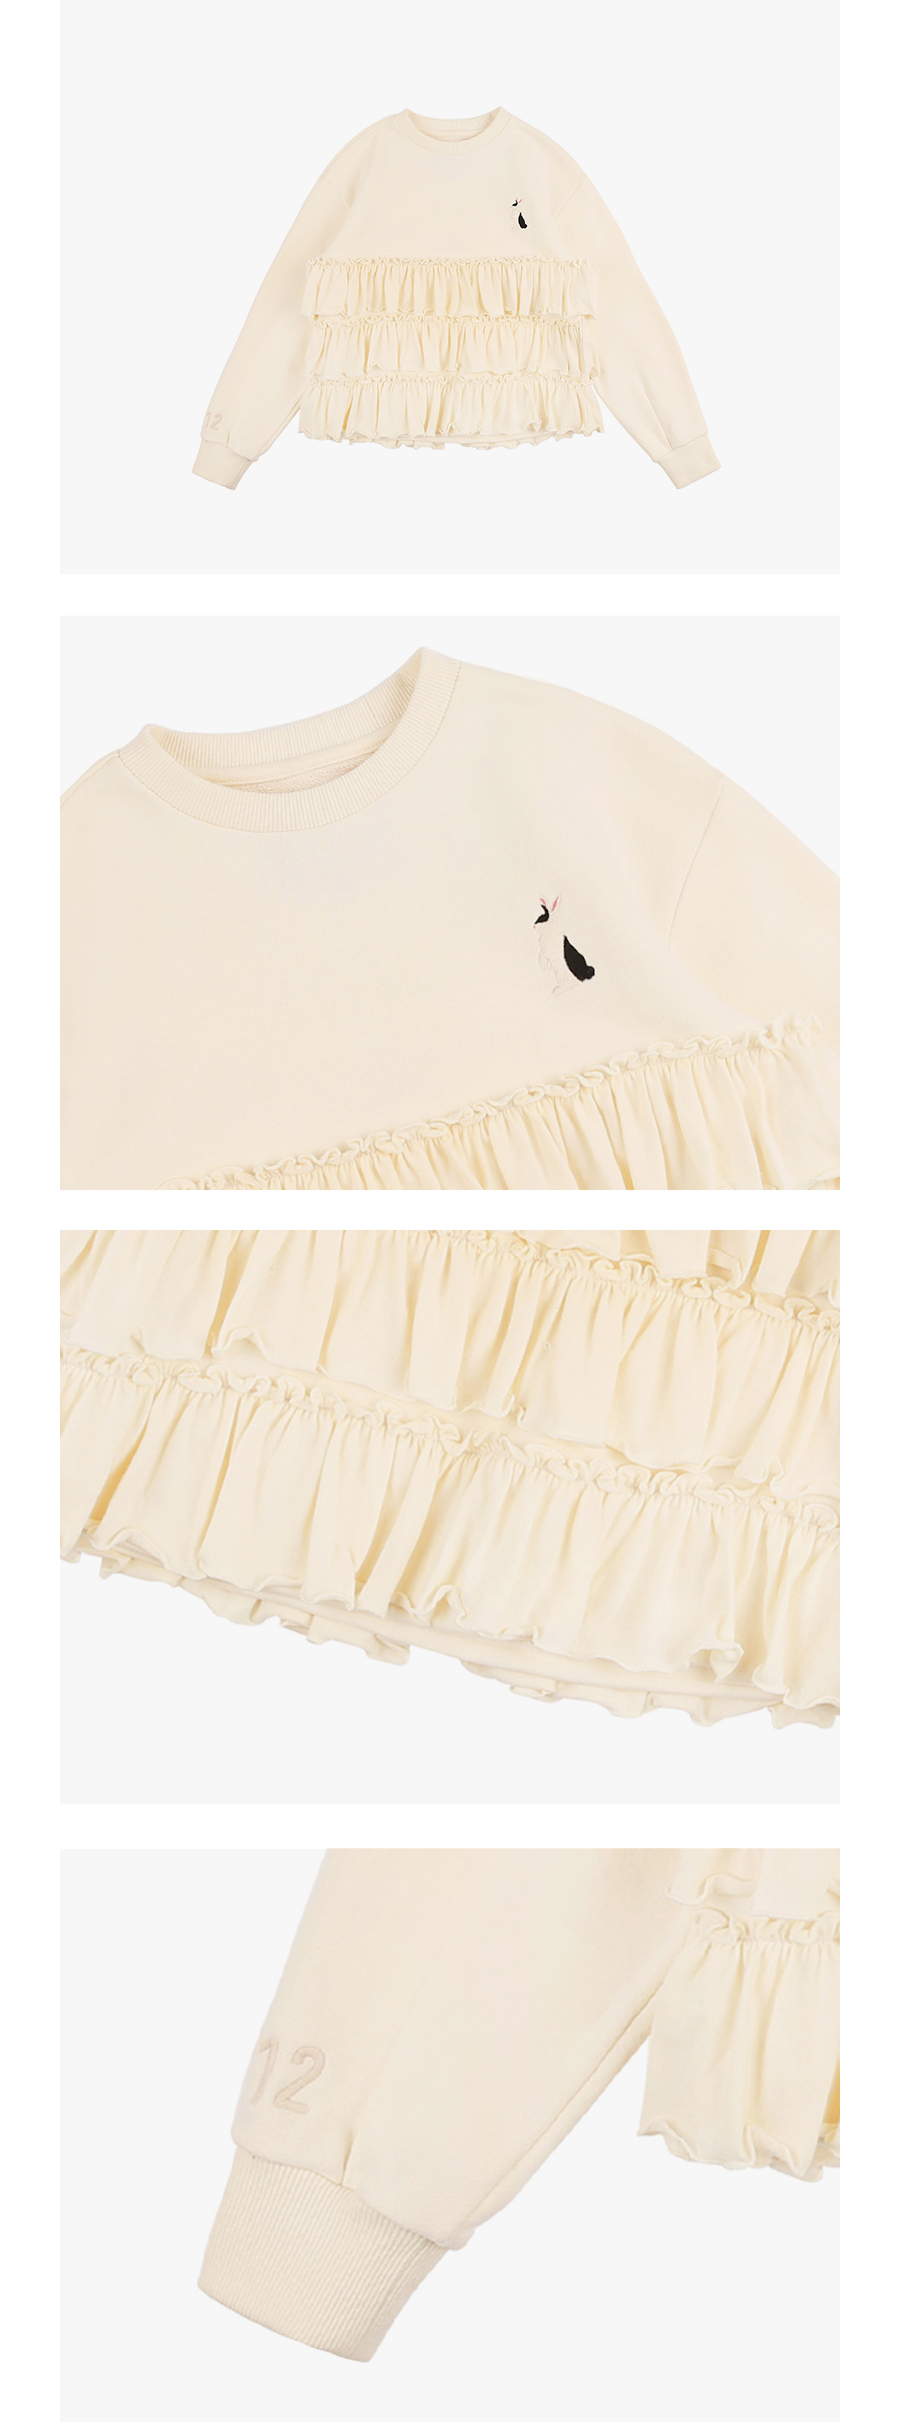 Rabbit tiered ruffle sweatshirt 상세 이미지